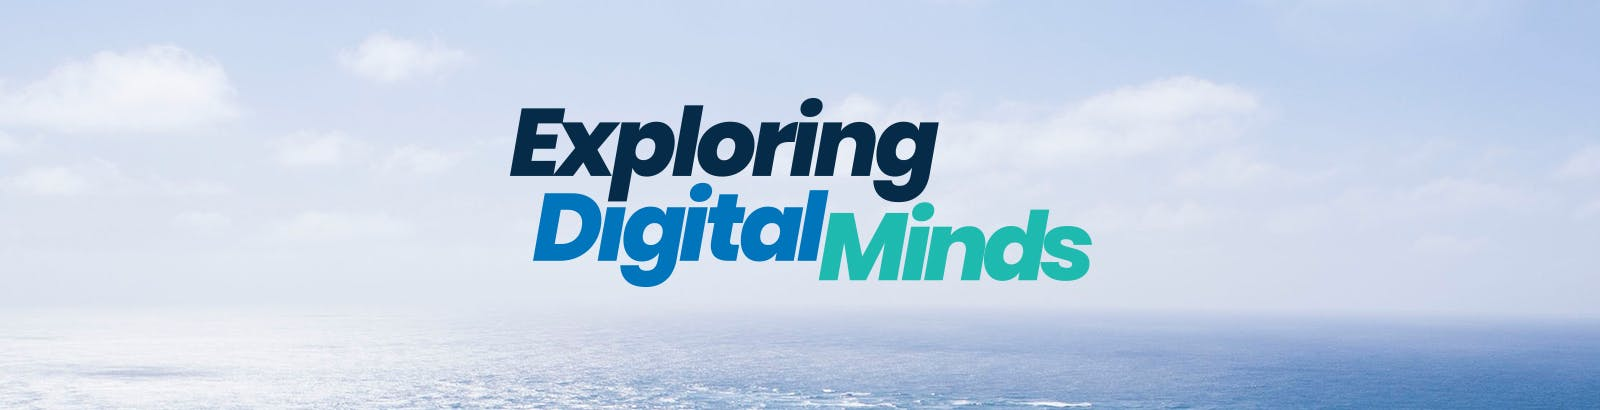 Exploring Digital Minds: Insights from Joey Leichman at the OpenX Brand Summit